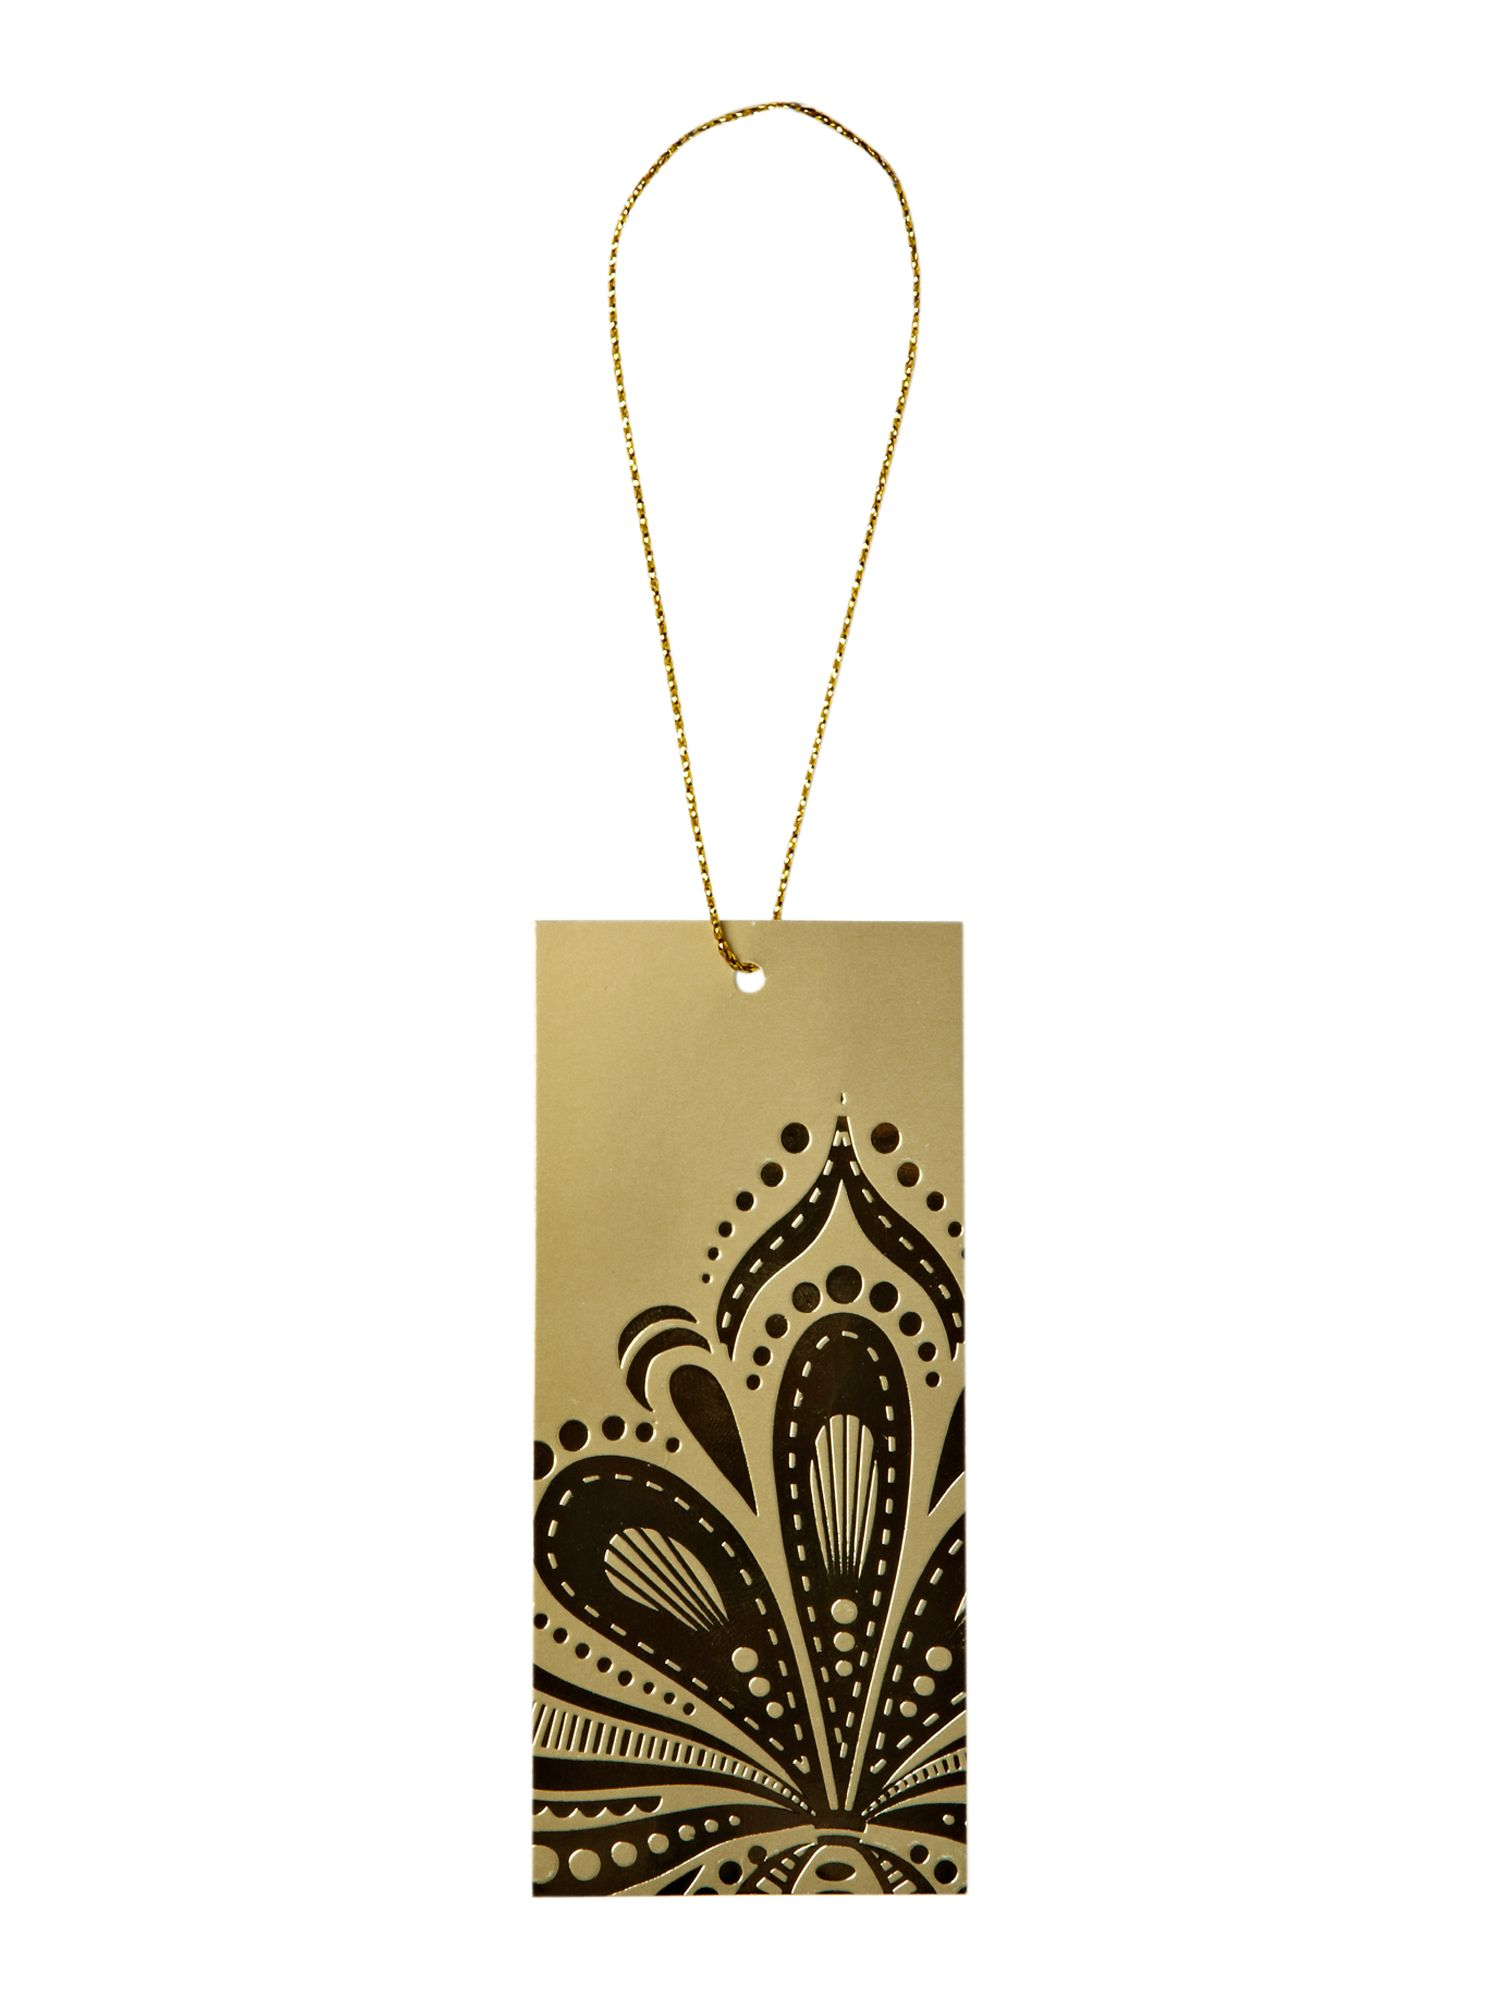 Ten damask tags